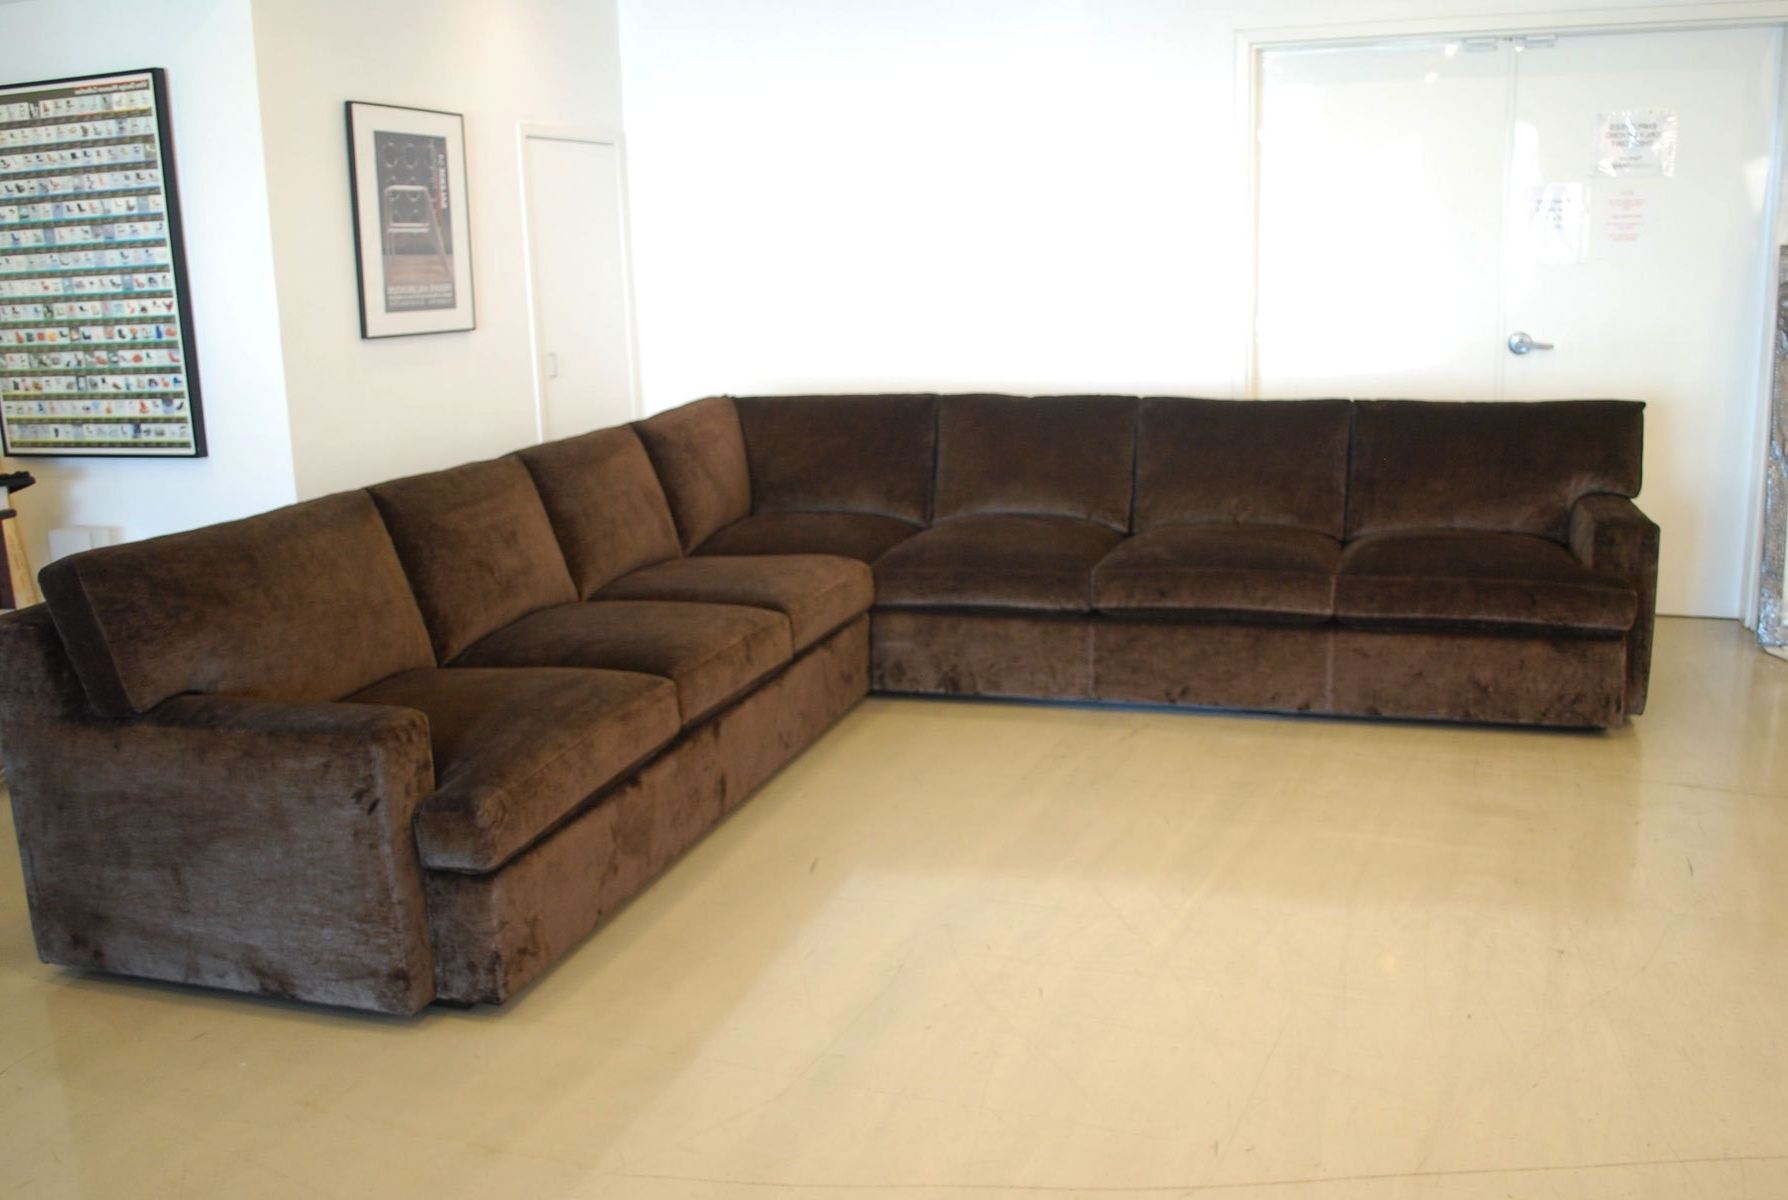 Amusing Large L Shaped Sectional Sofas 99 On The Brick Sofa Bed With Regard To Most Recently Released Sectional Sofas At Brick (View 1 of 15)